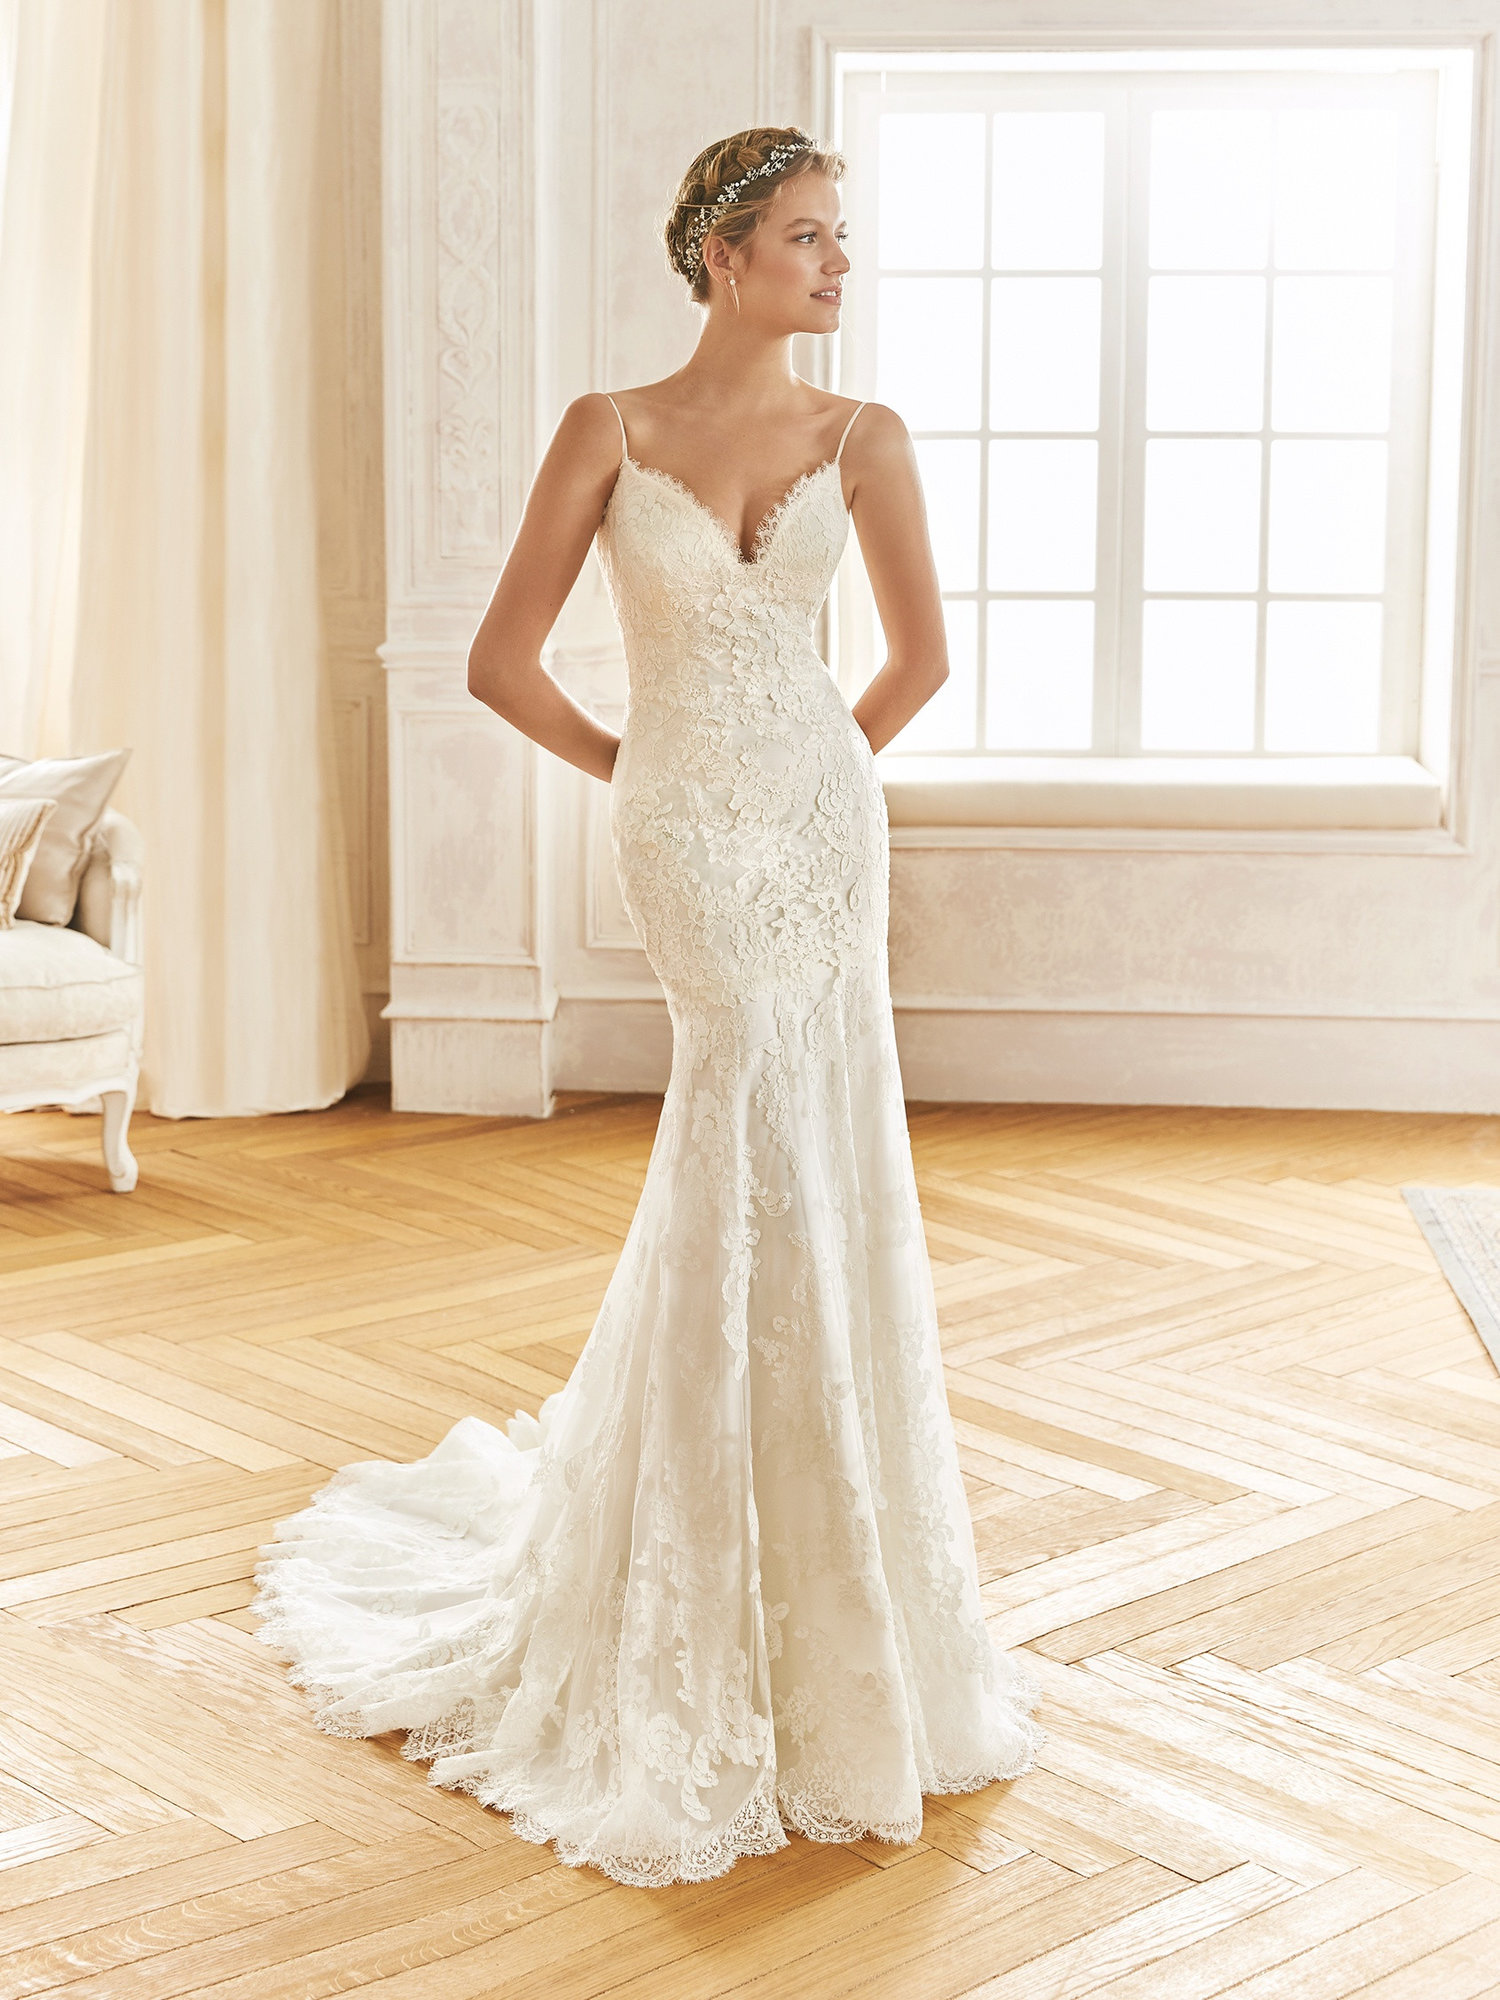 56aea11a63e9 Wedding Gown Rental  Purchases — blessed brides